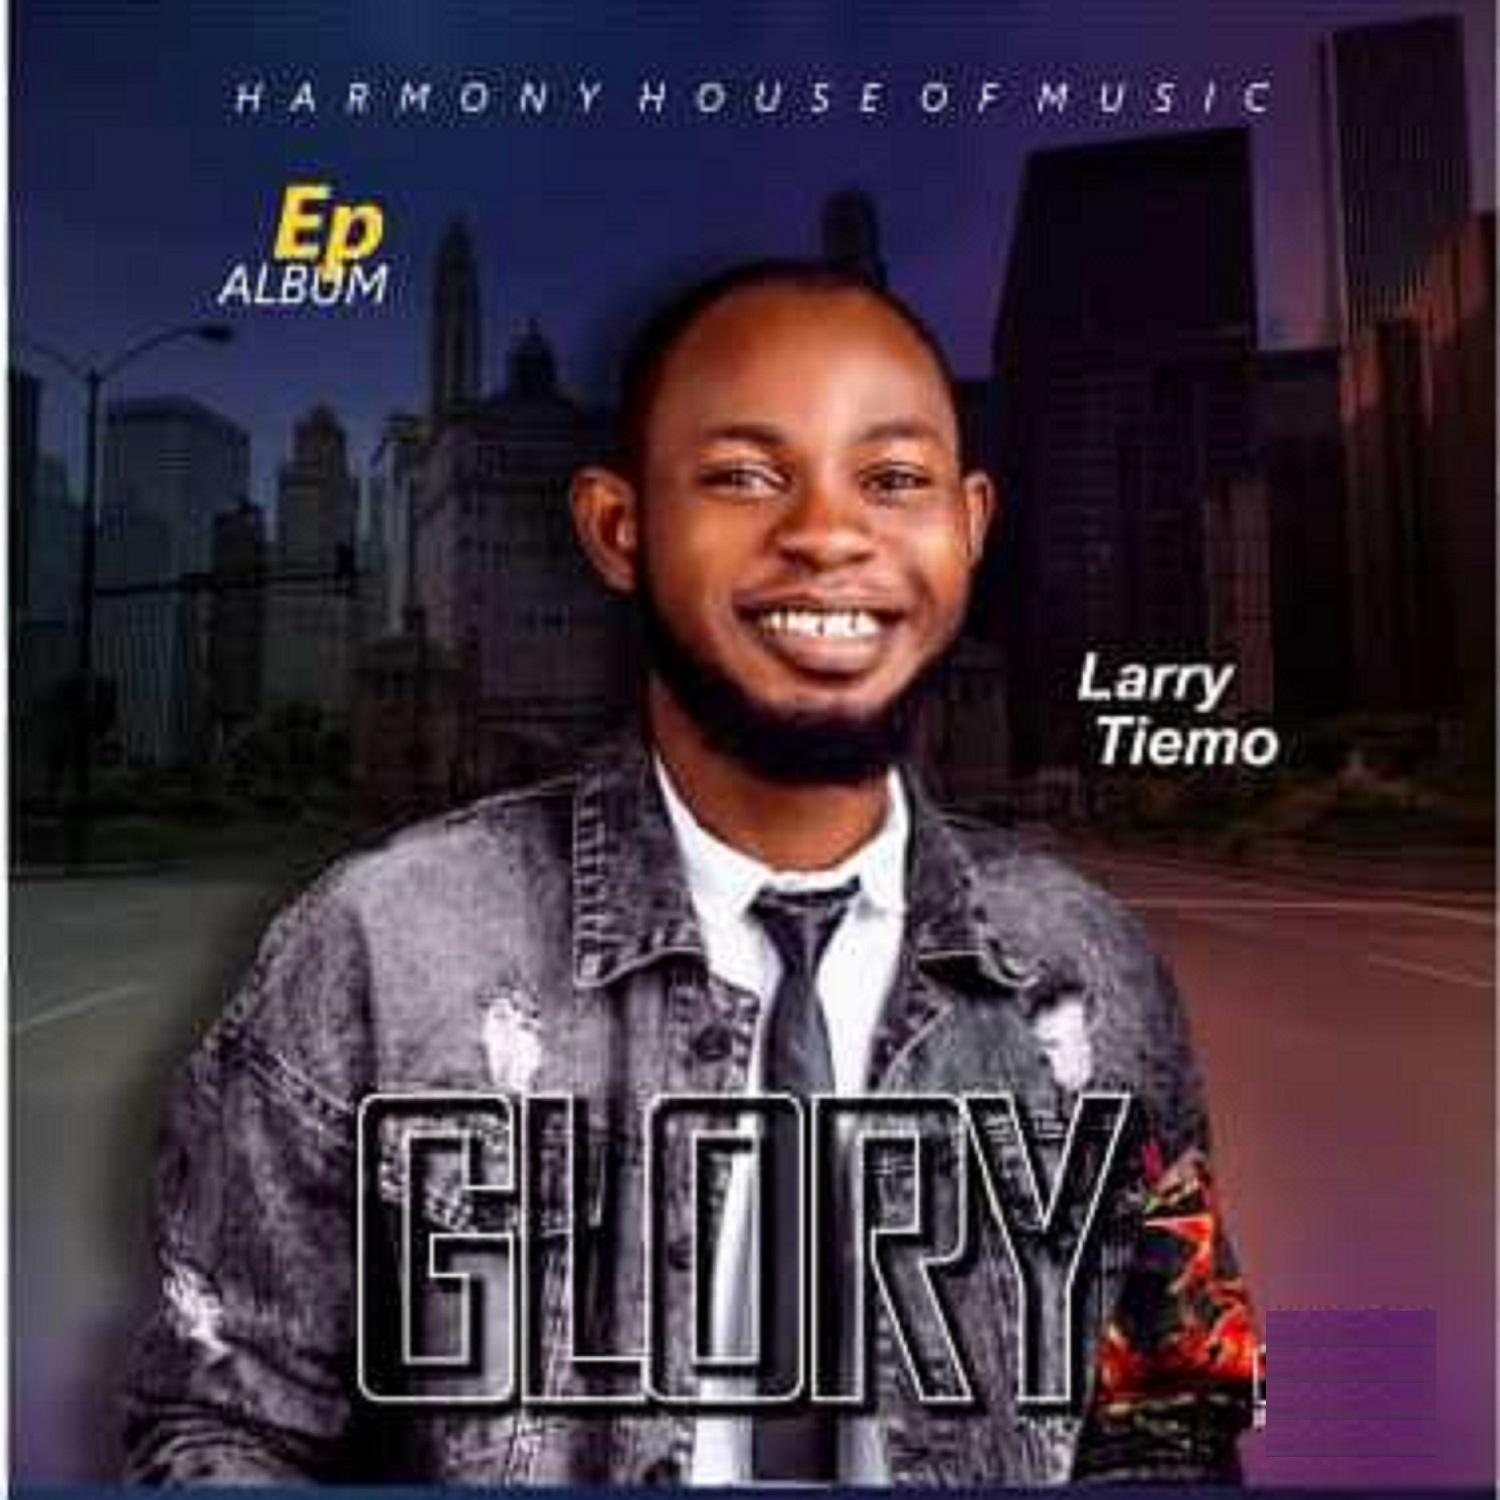 EVEN IN MY FLAWS - Larry Tiemo